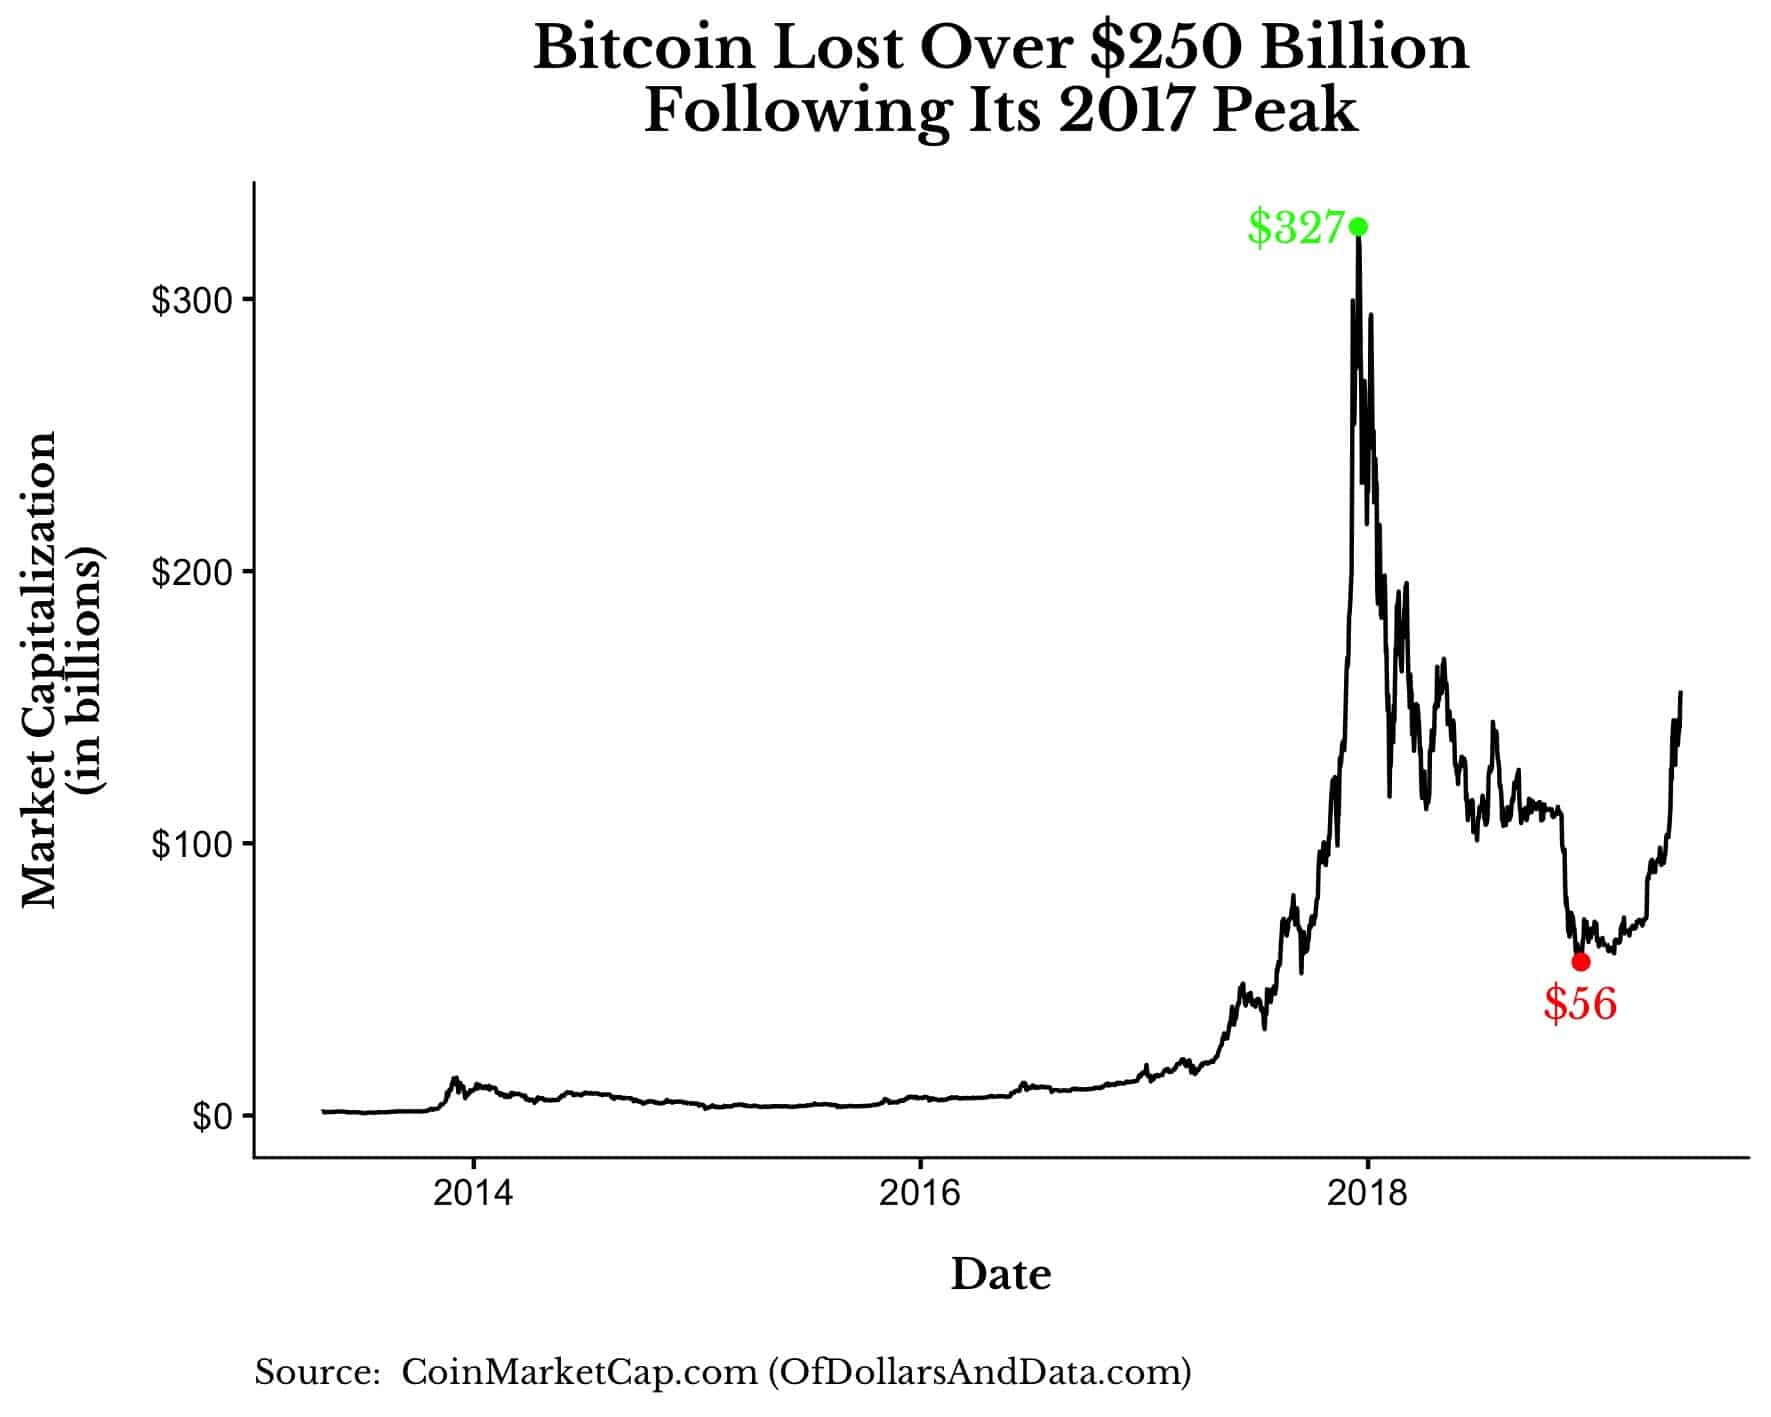 chart of Bitcoin market capitalization from 2013 to 2019